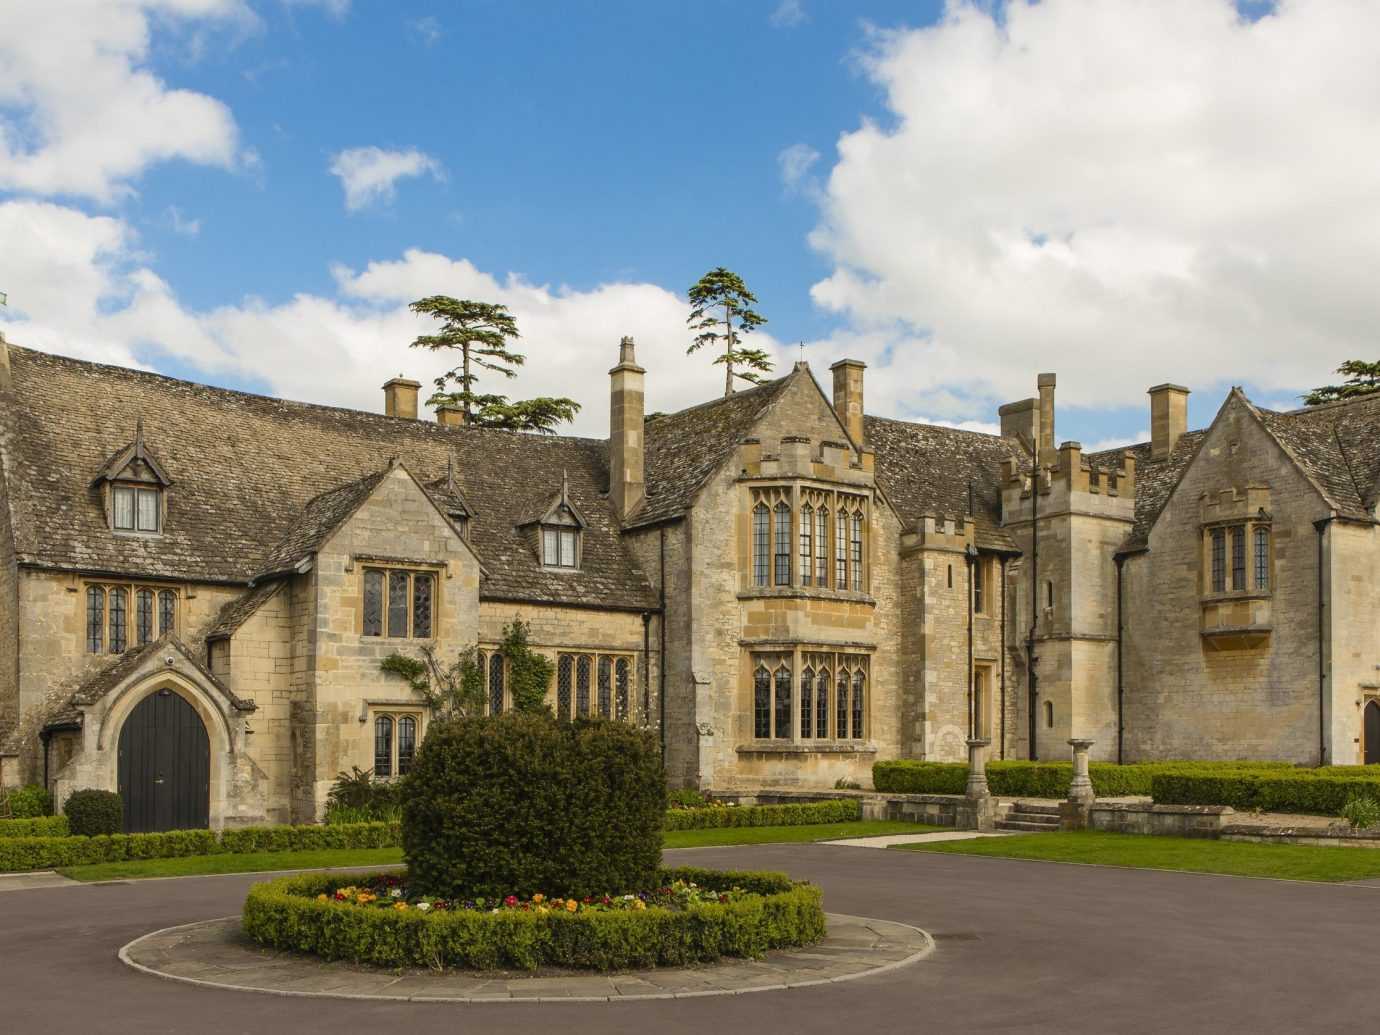 Ellenborough Park, United Kingdom